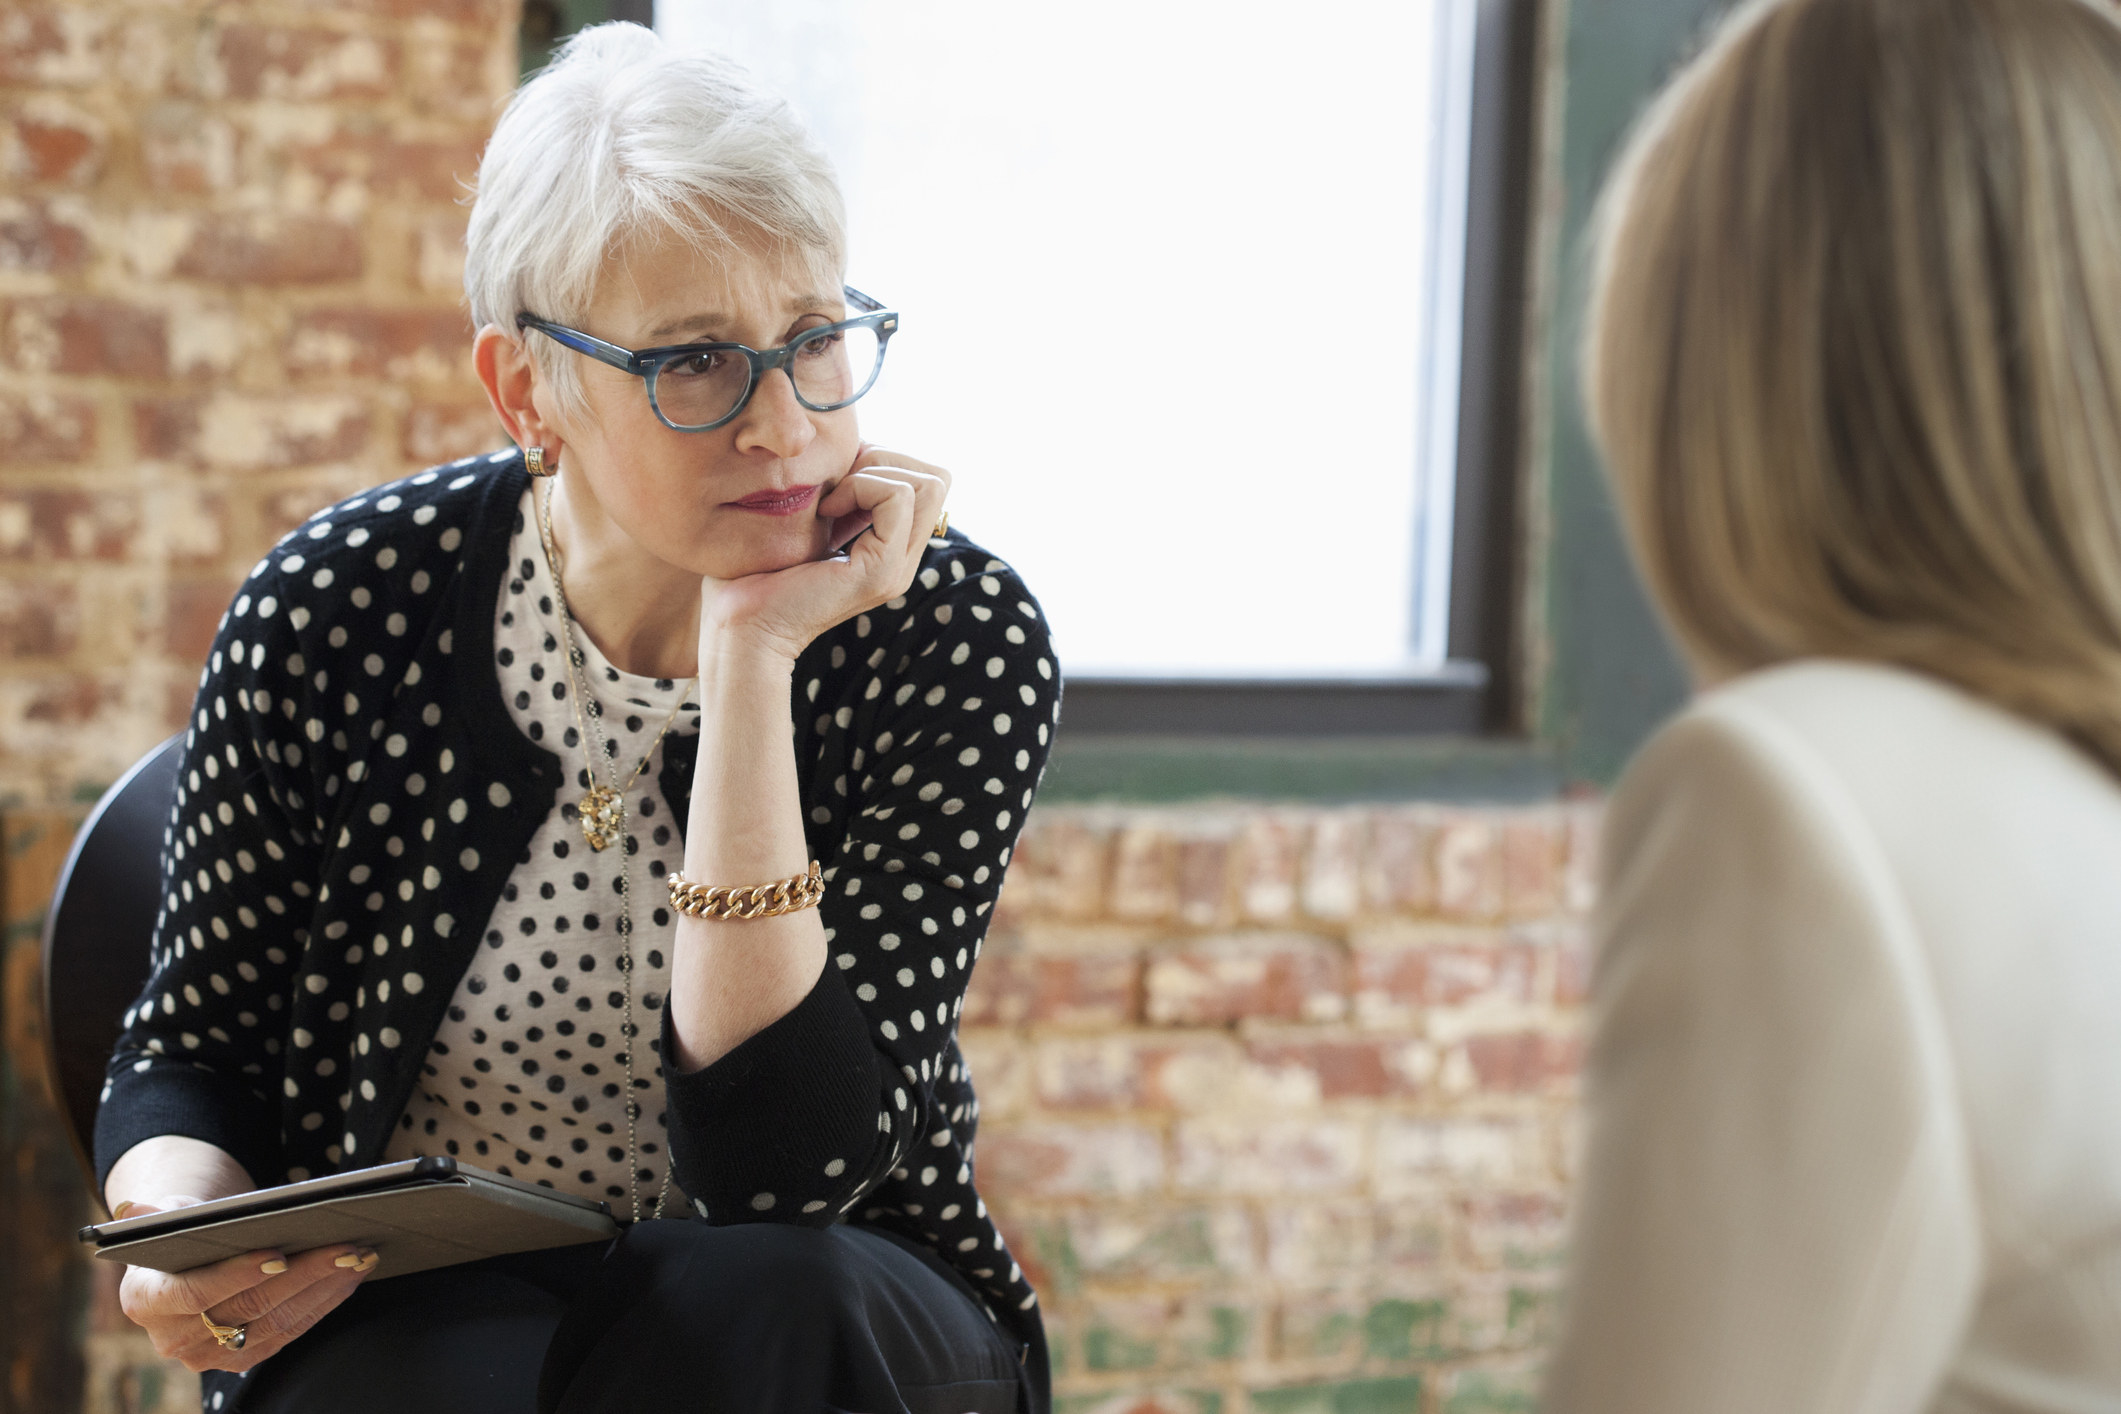 A therapist talking to a patient